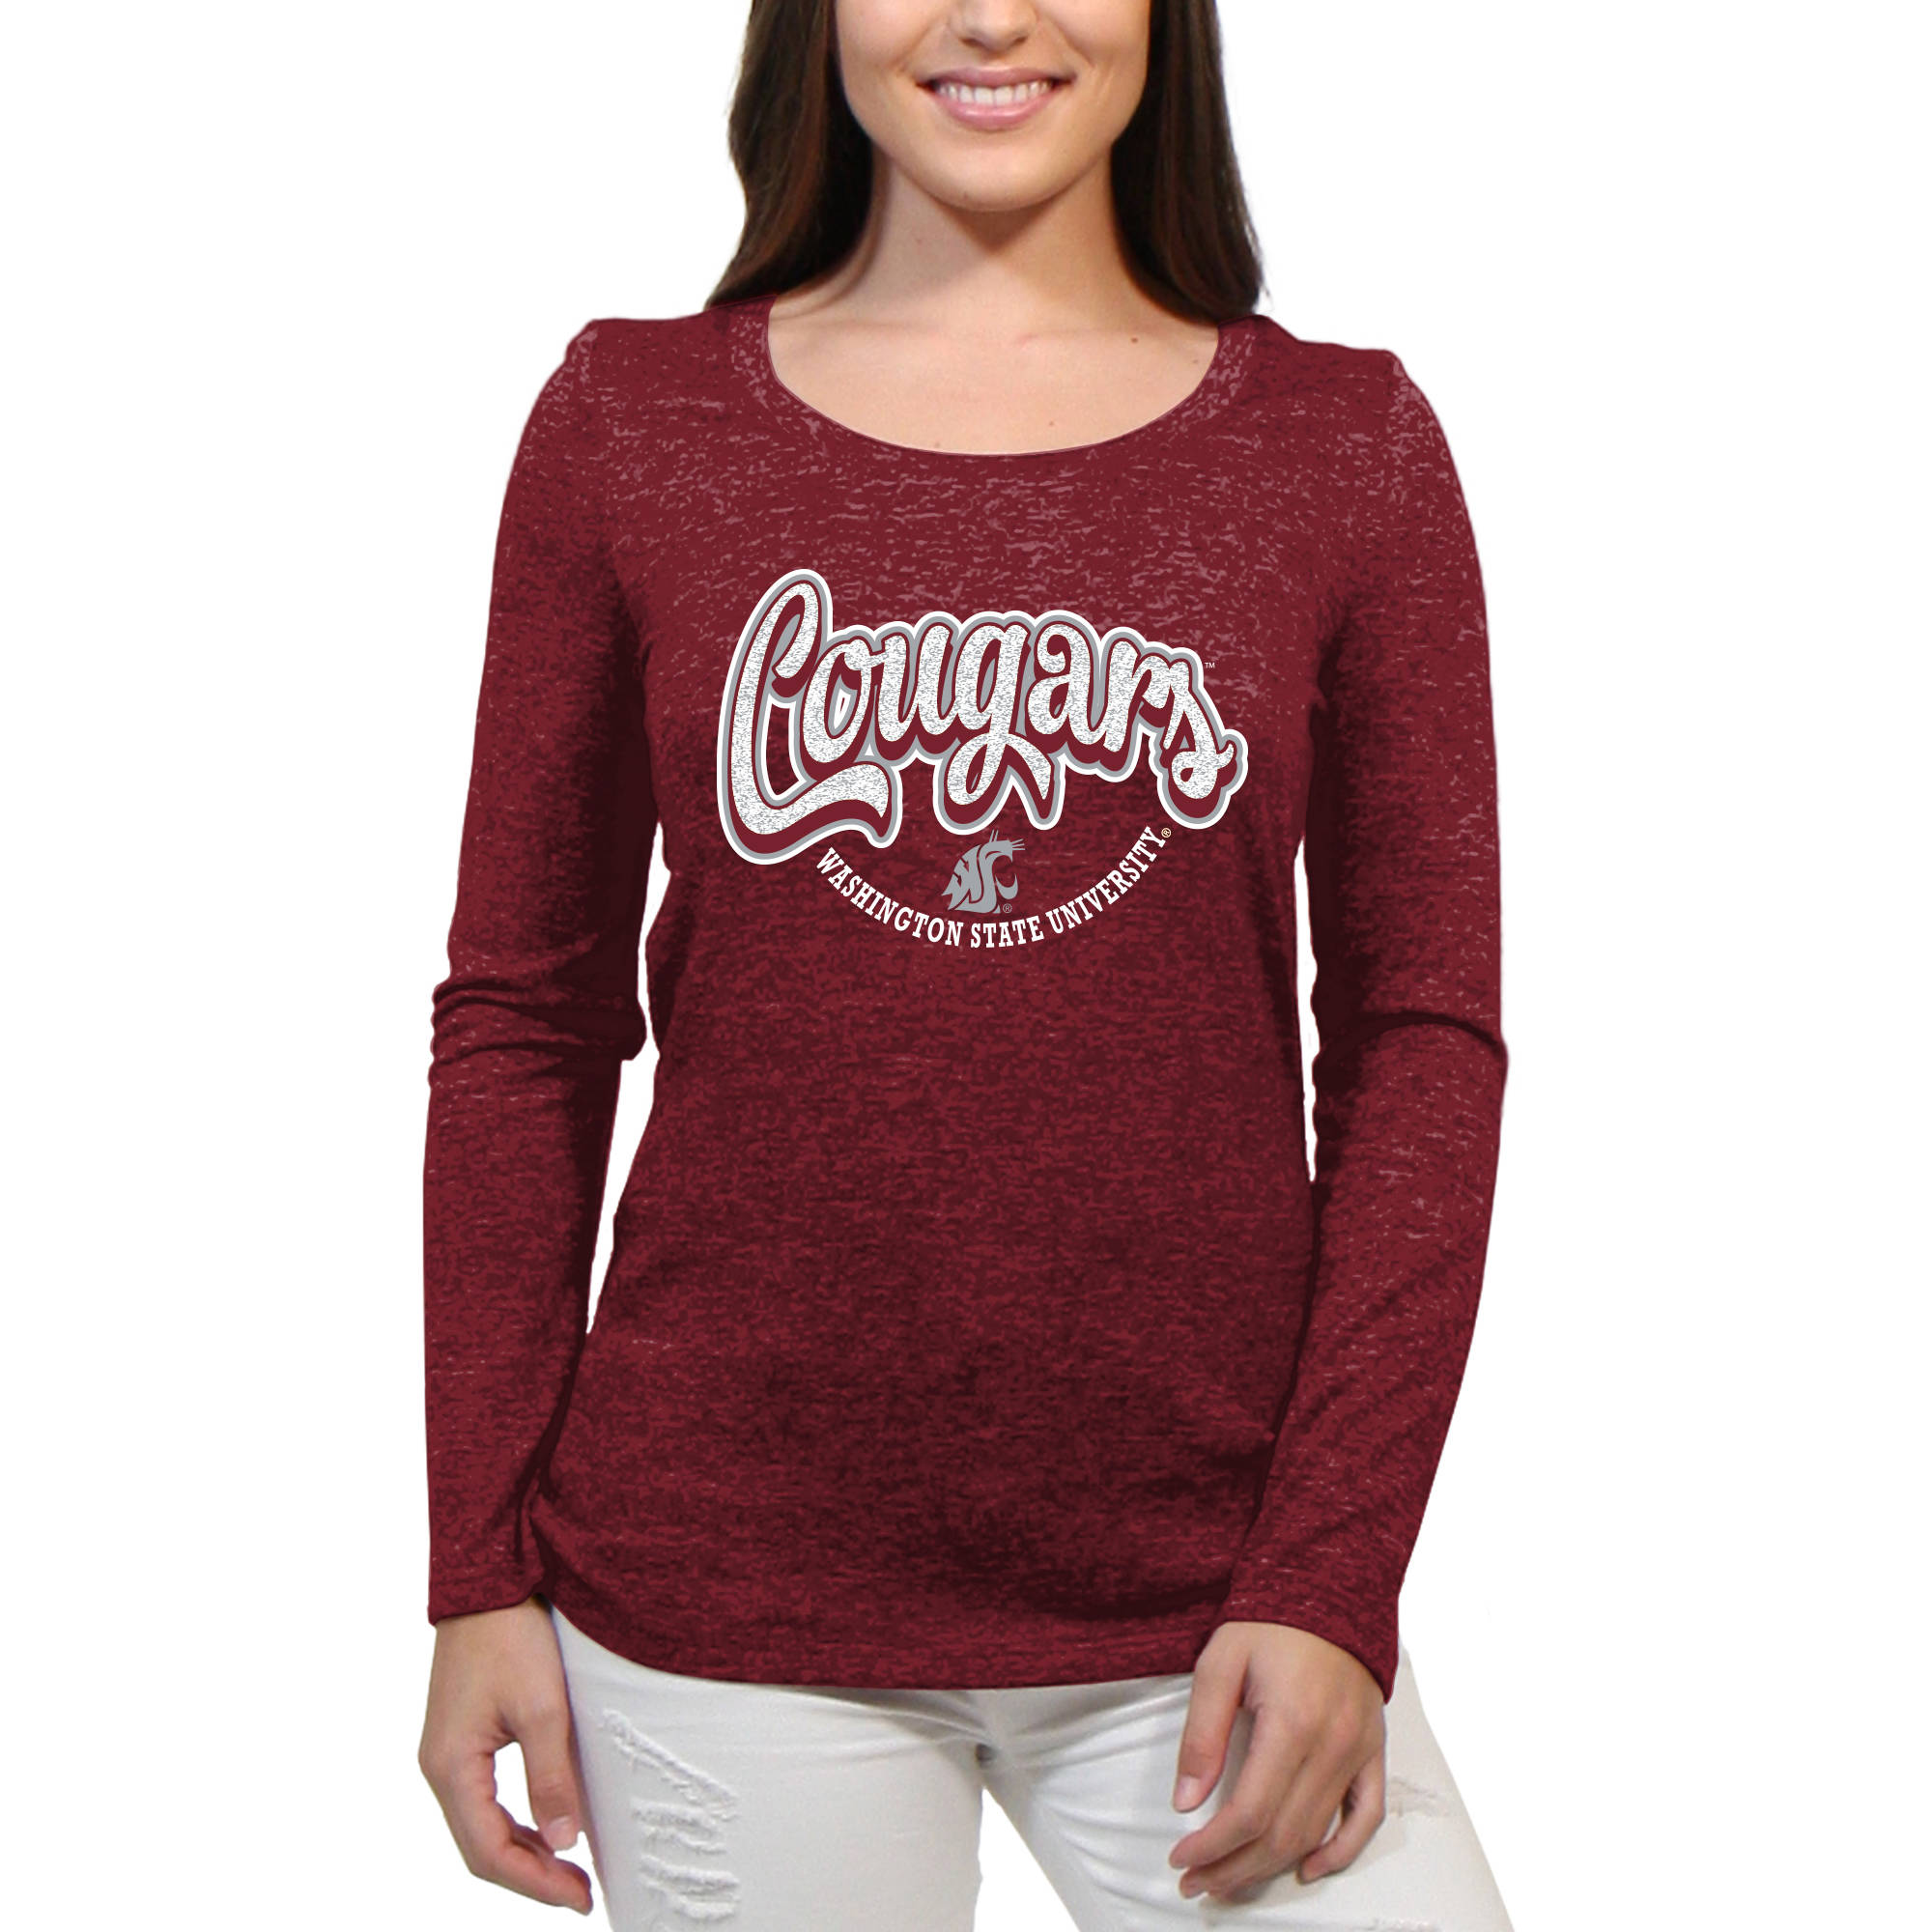 Washington State Cougars Funky Script Women'S/Juniors Team Long Sleeve Scoop Neck Shirt